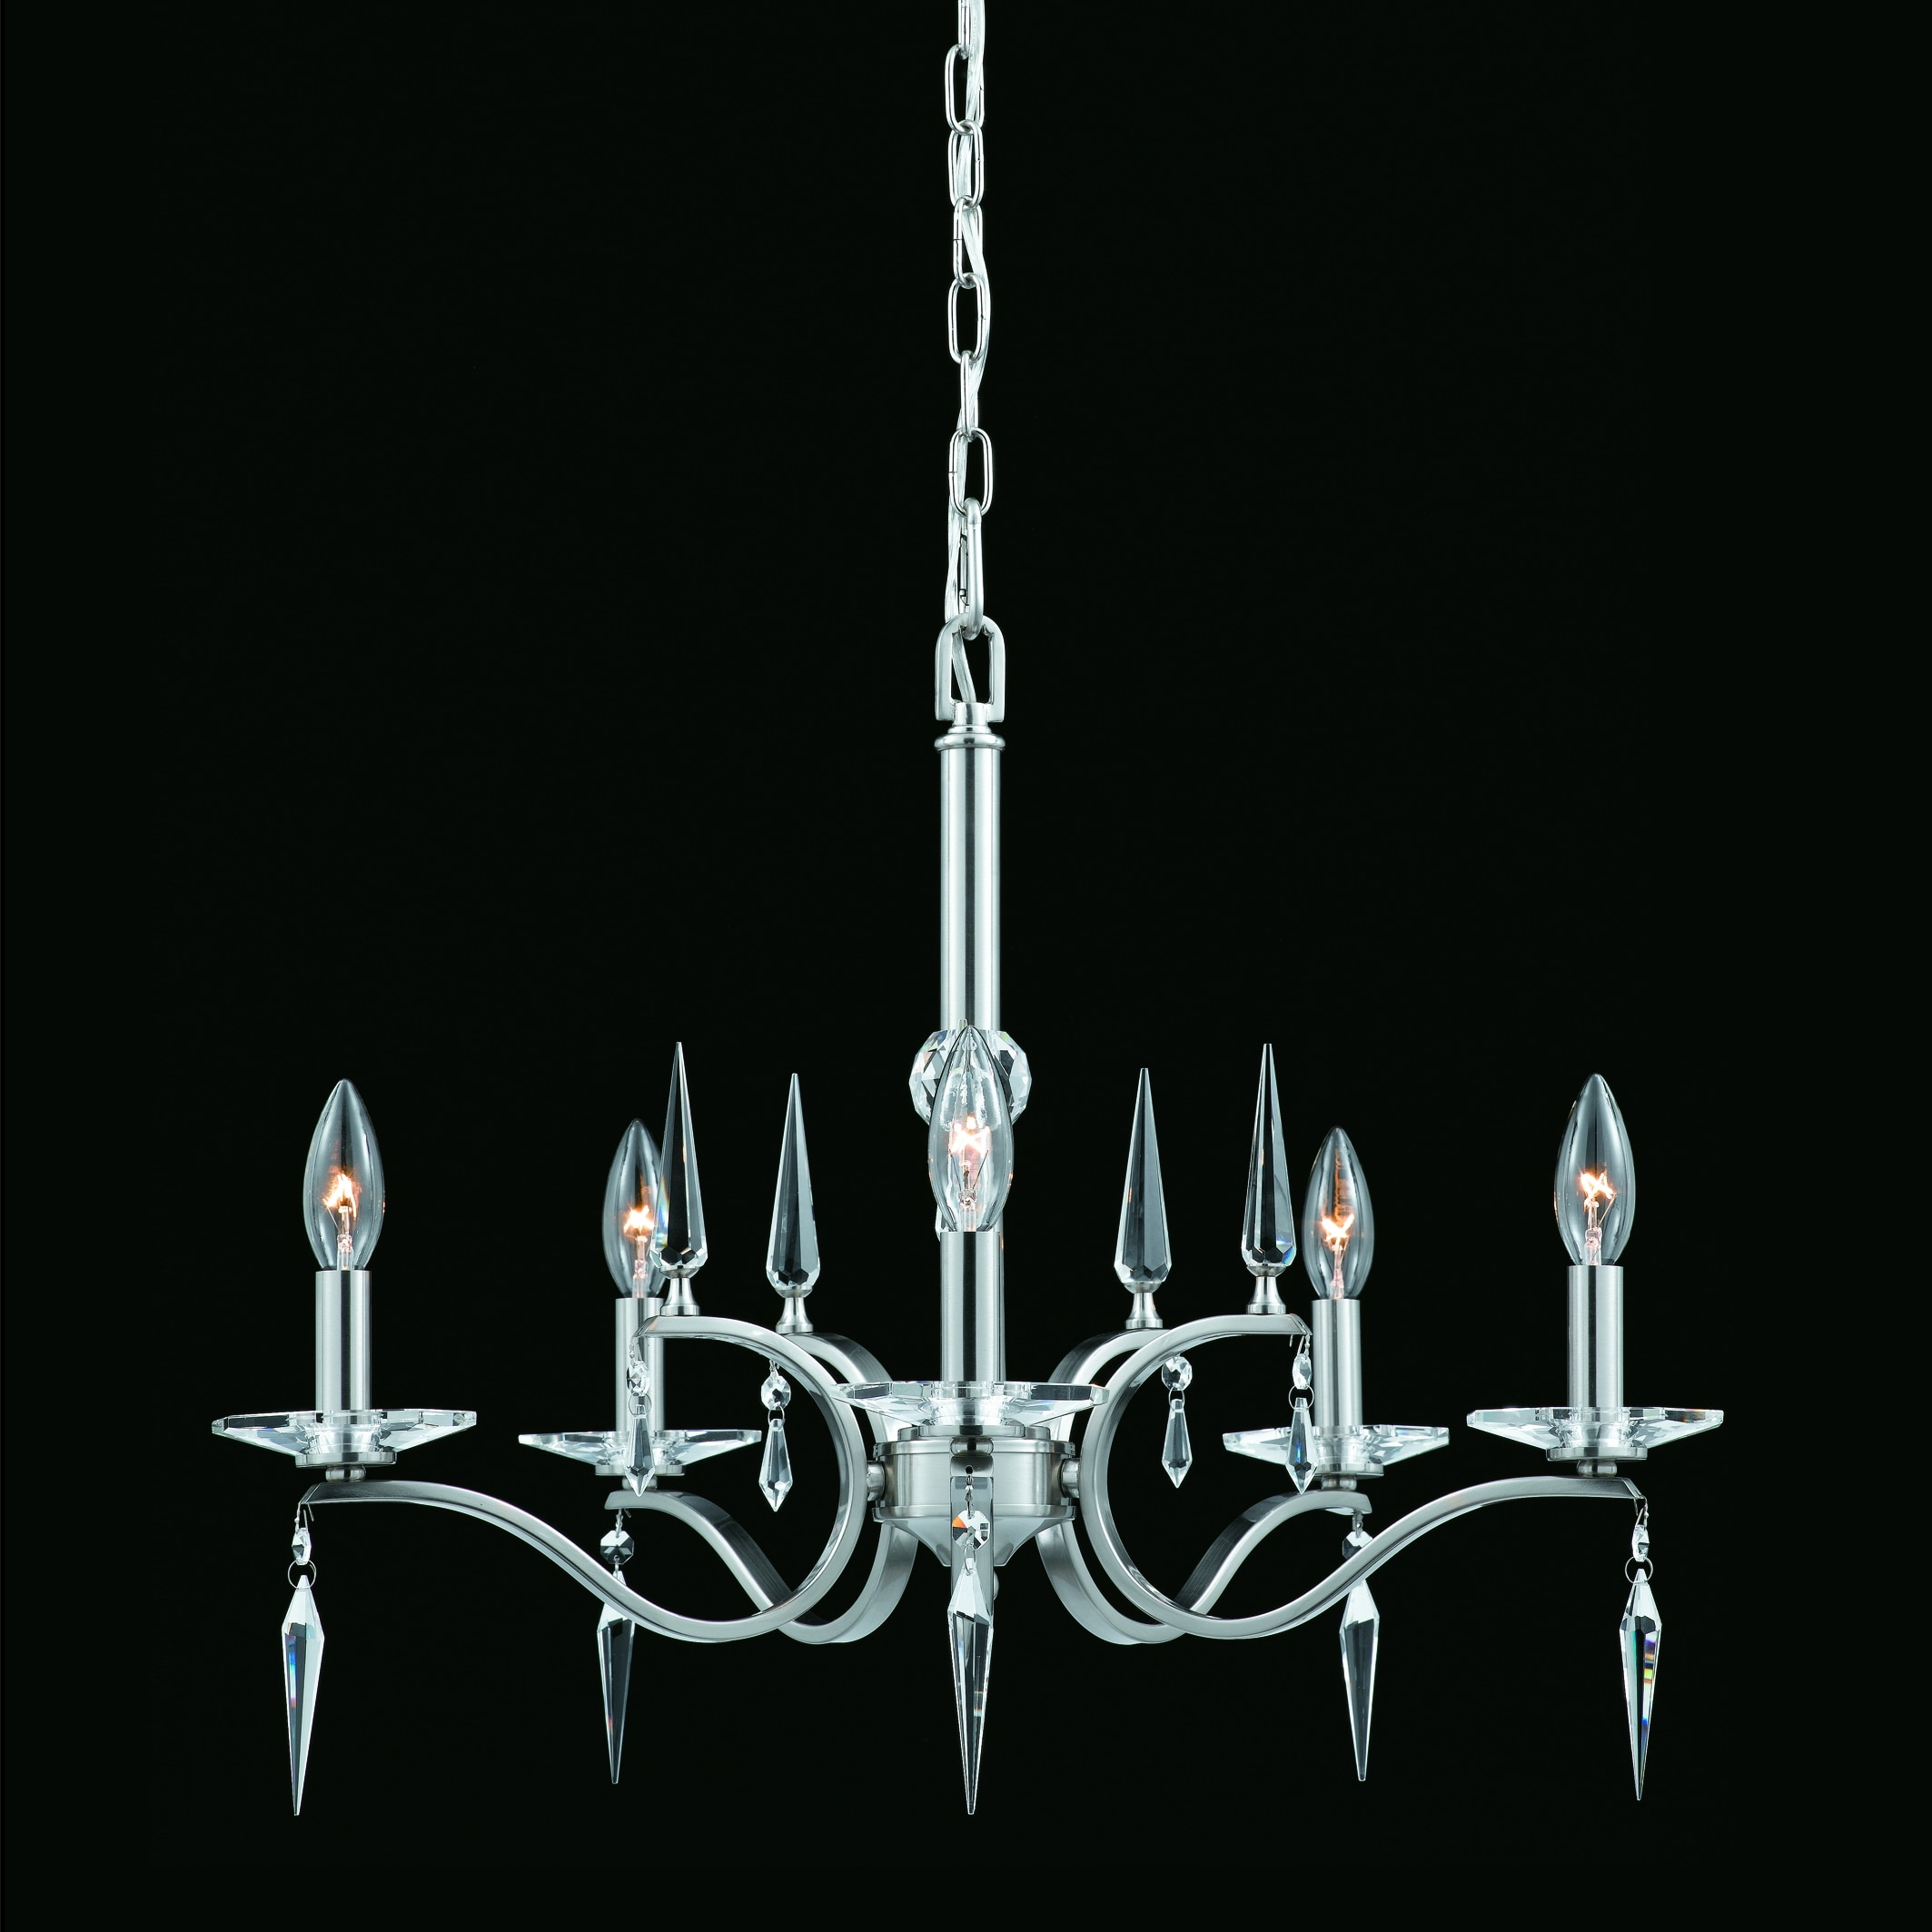 The Swan 5-light Chandelier in Satin Nickel Finish